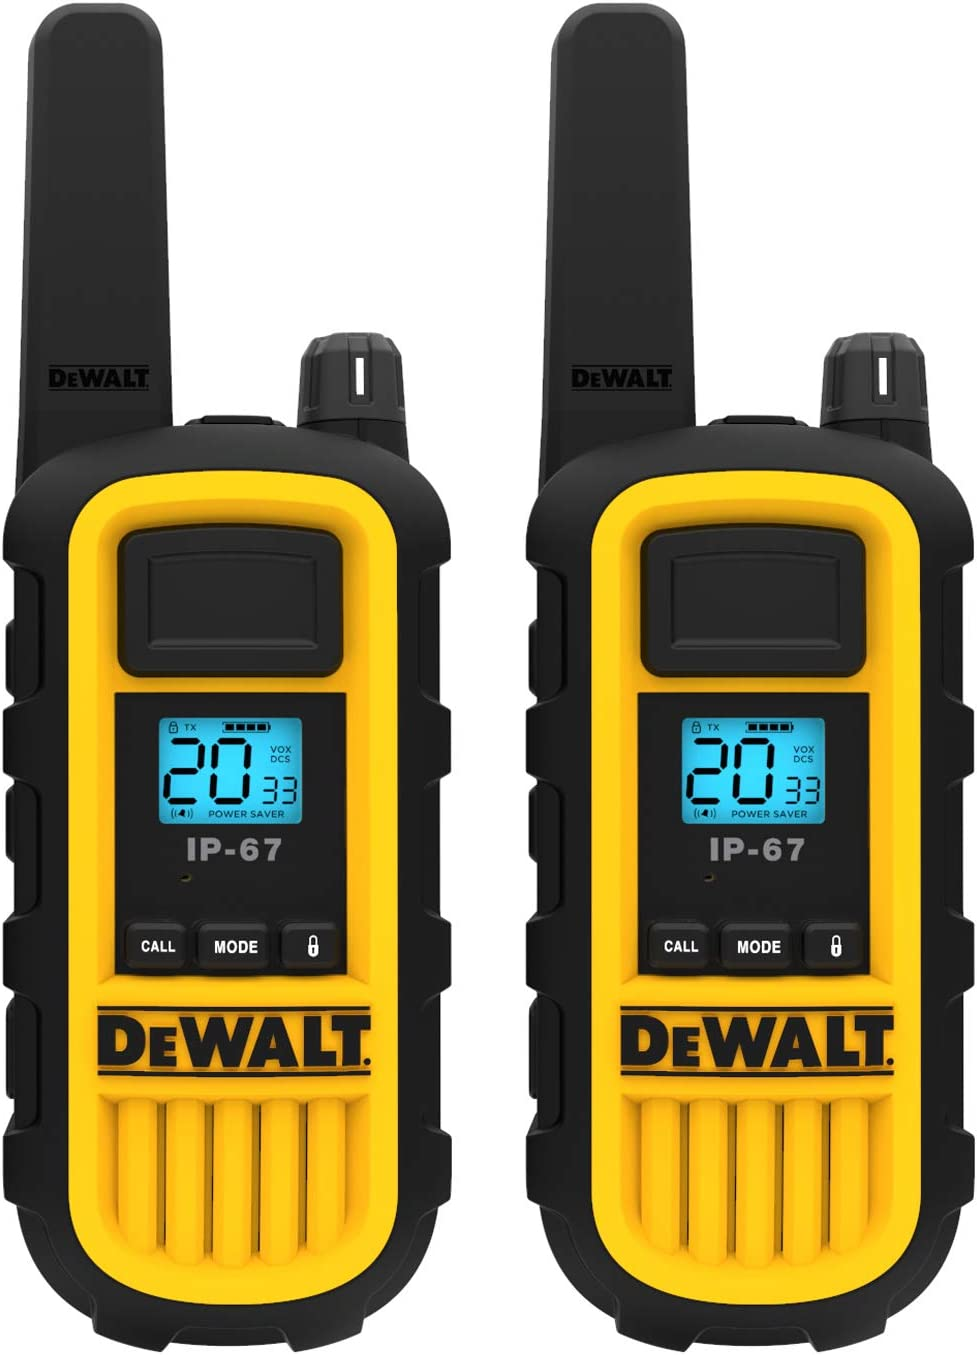 DEWALT DXFRS800 2 Watt Heavy Duty Walkie Talkies - Waterproof, Shock Resistant, Long Range & Rechargeable Two-Way Radio with VOX (2 Pack)